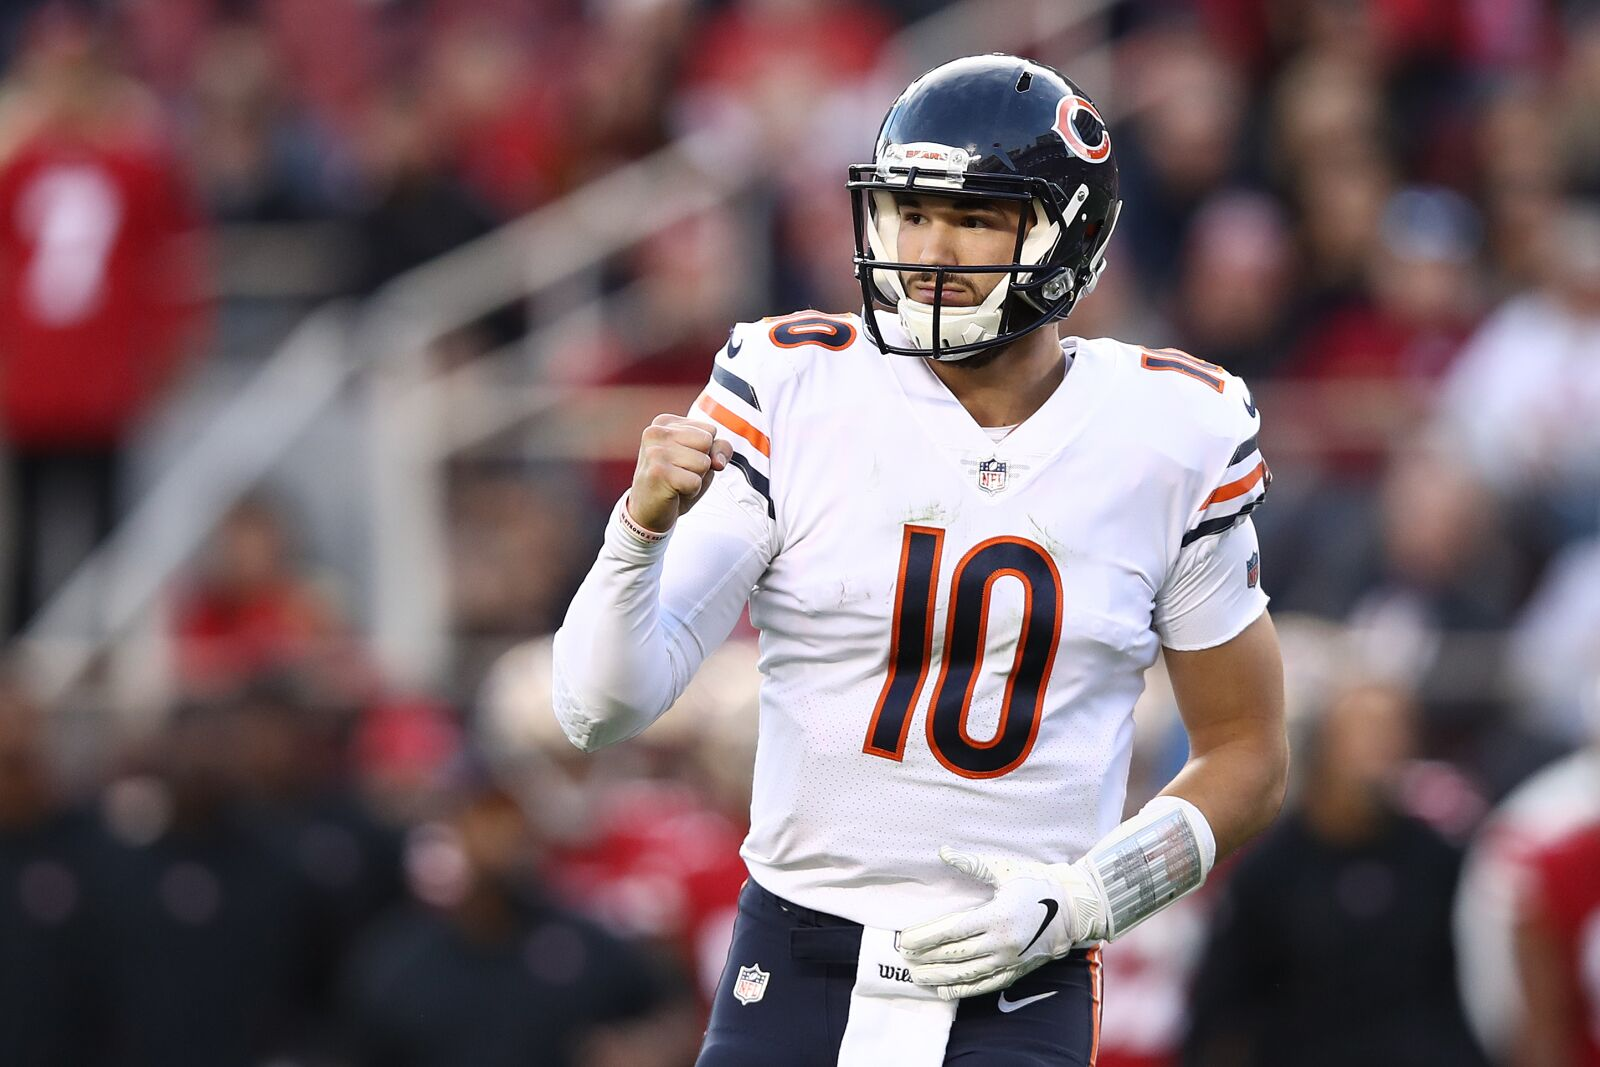 Chicago Bears: Over/Under 24 TDs for Mitch Trubisky